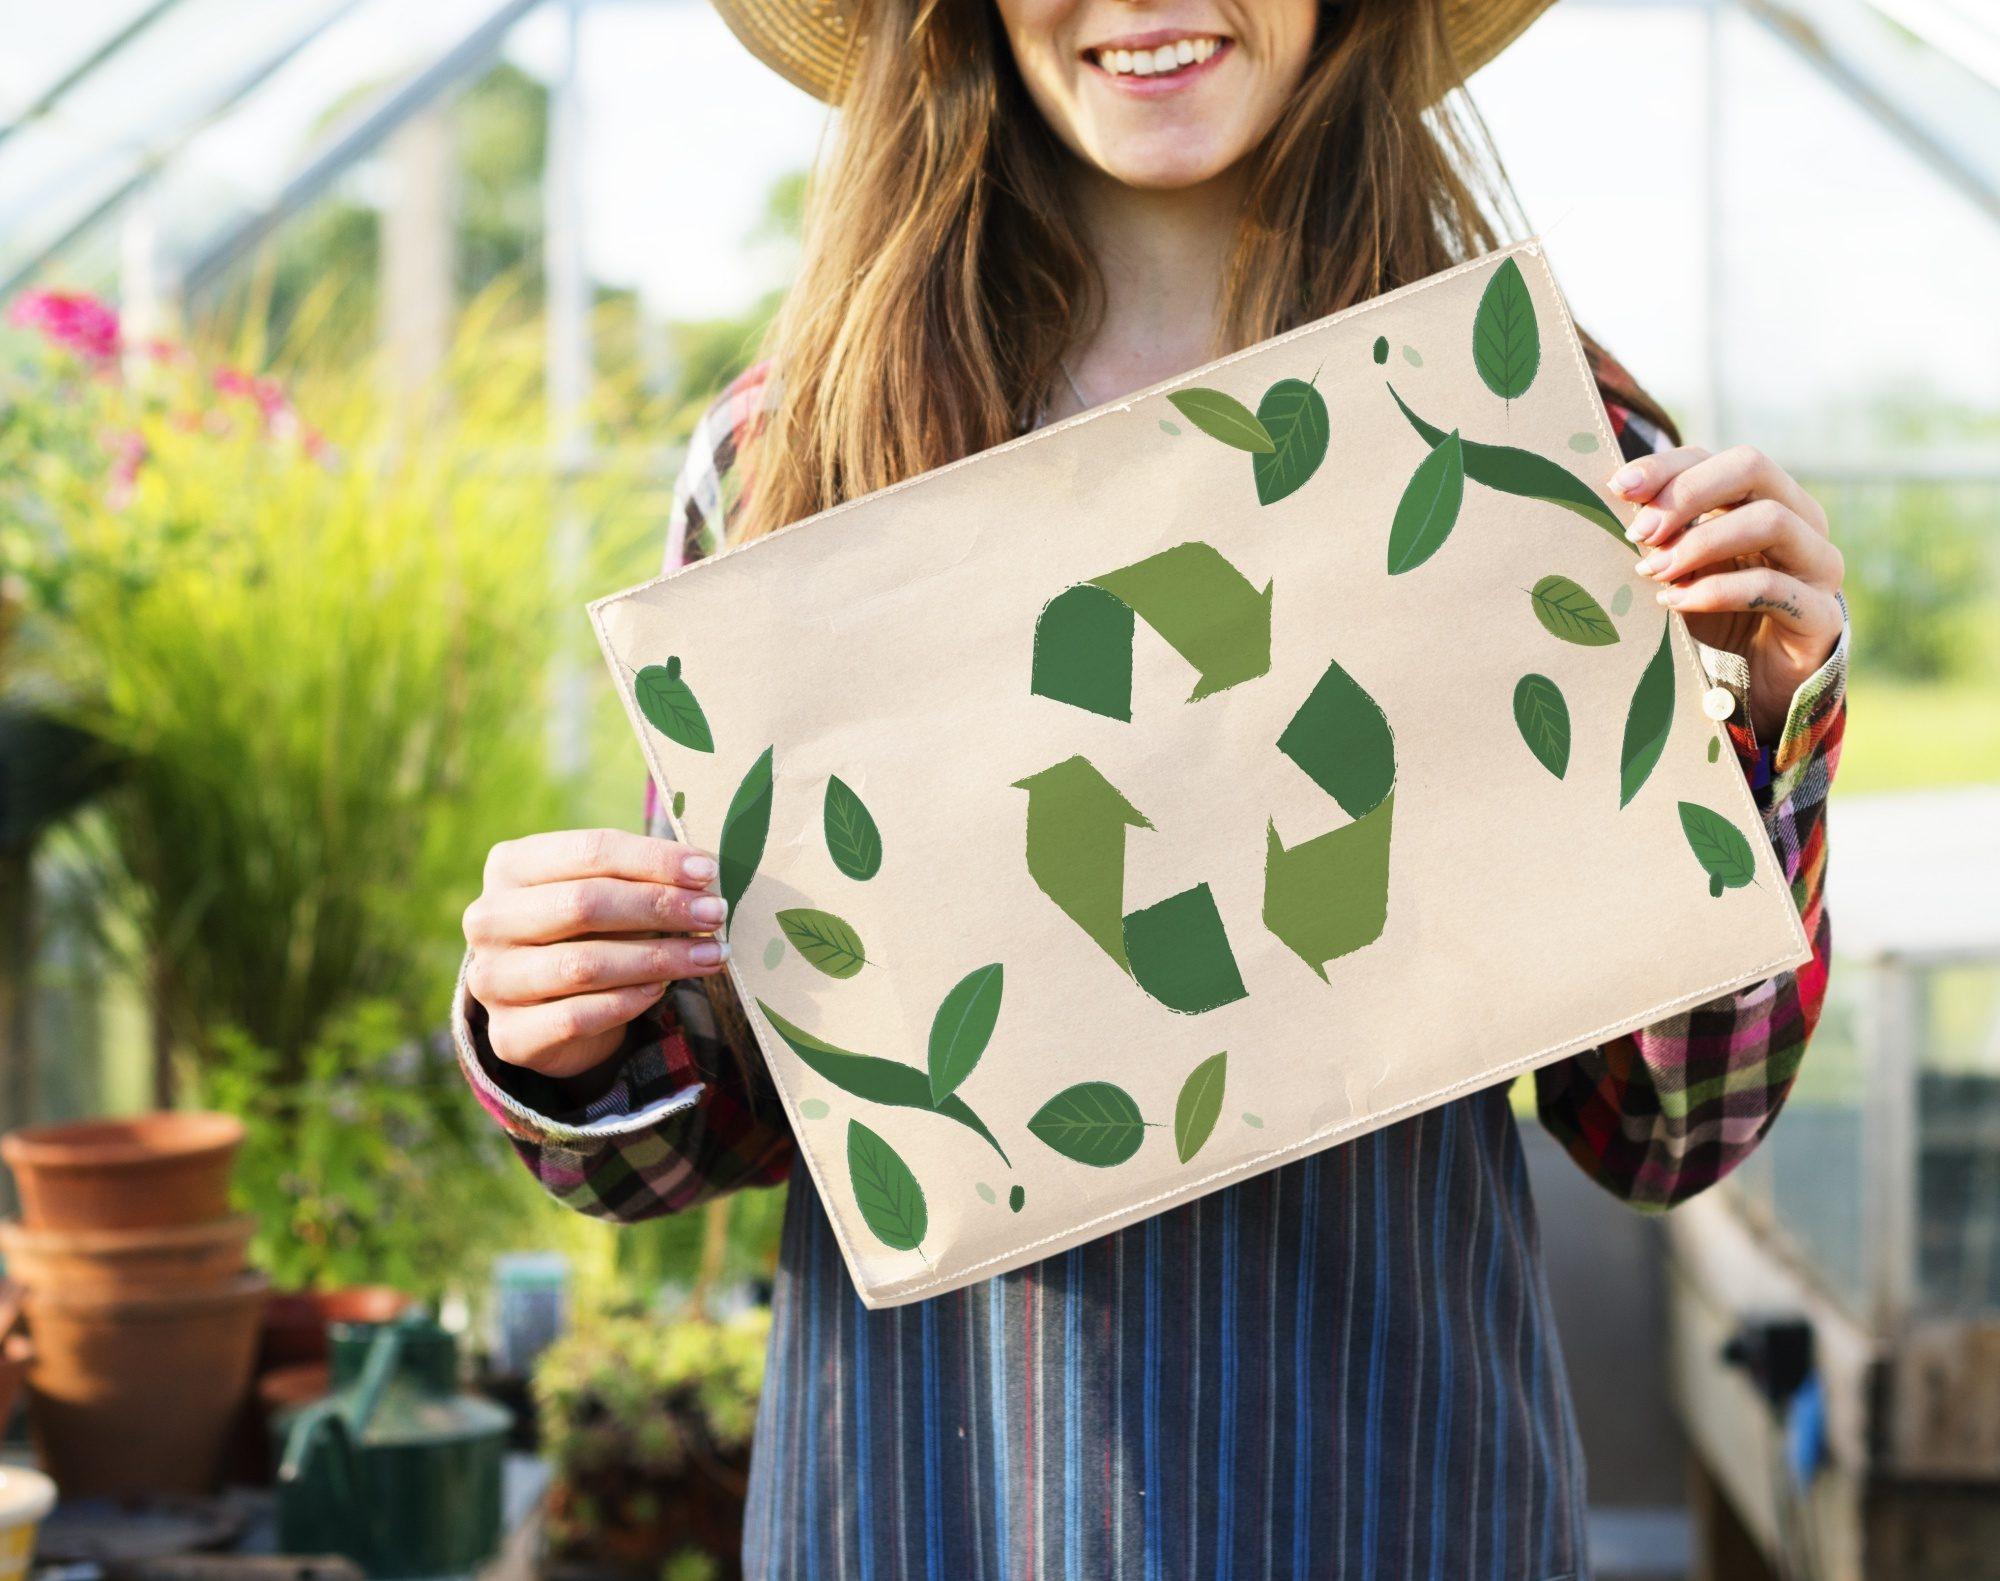 All Things Hair Refillery: Woman holding a recycle sign in a greenhouse